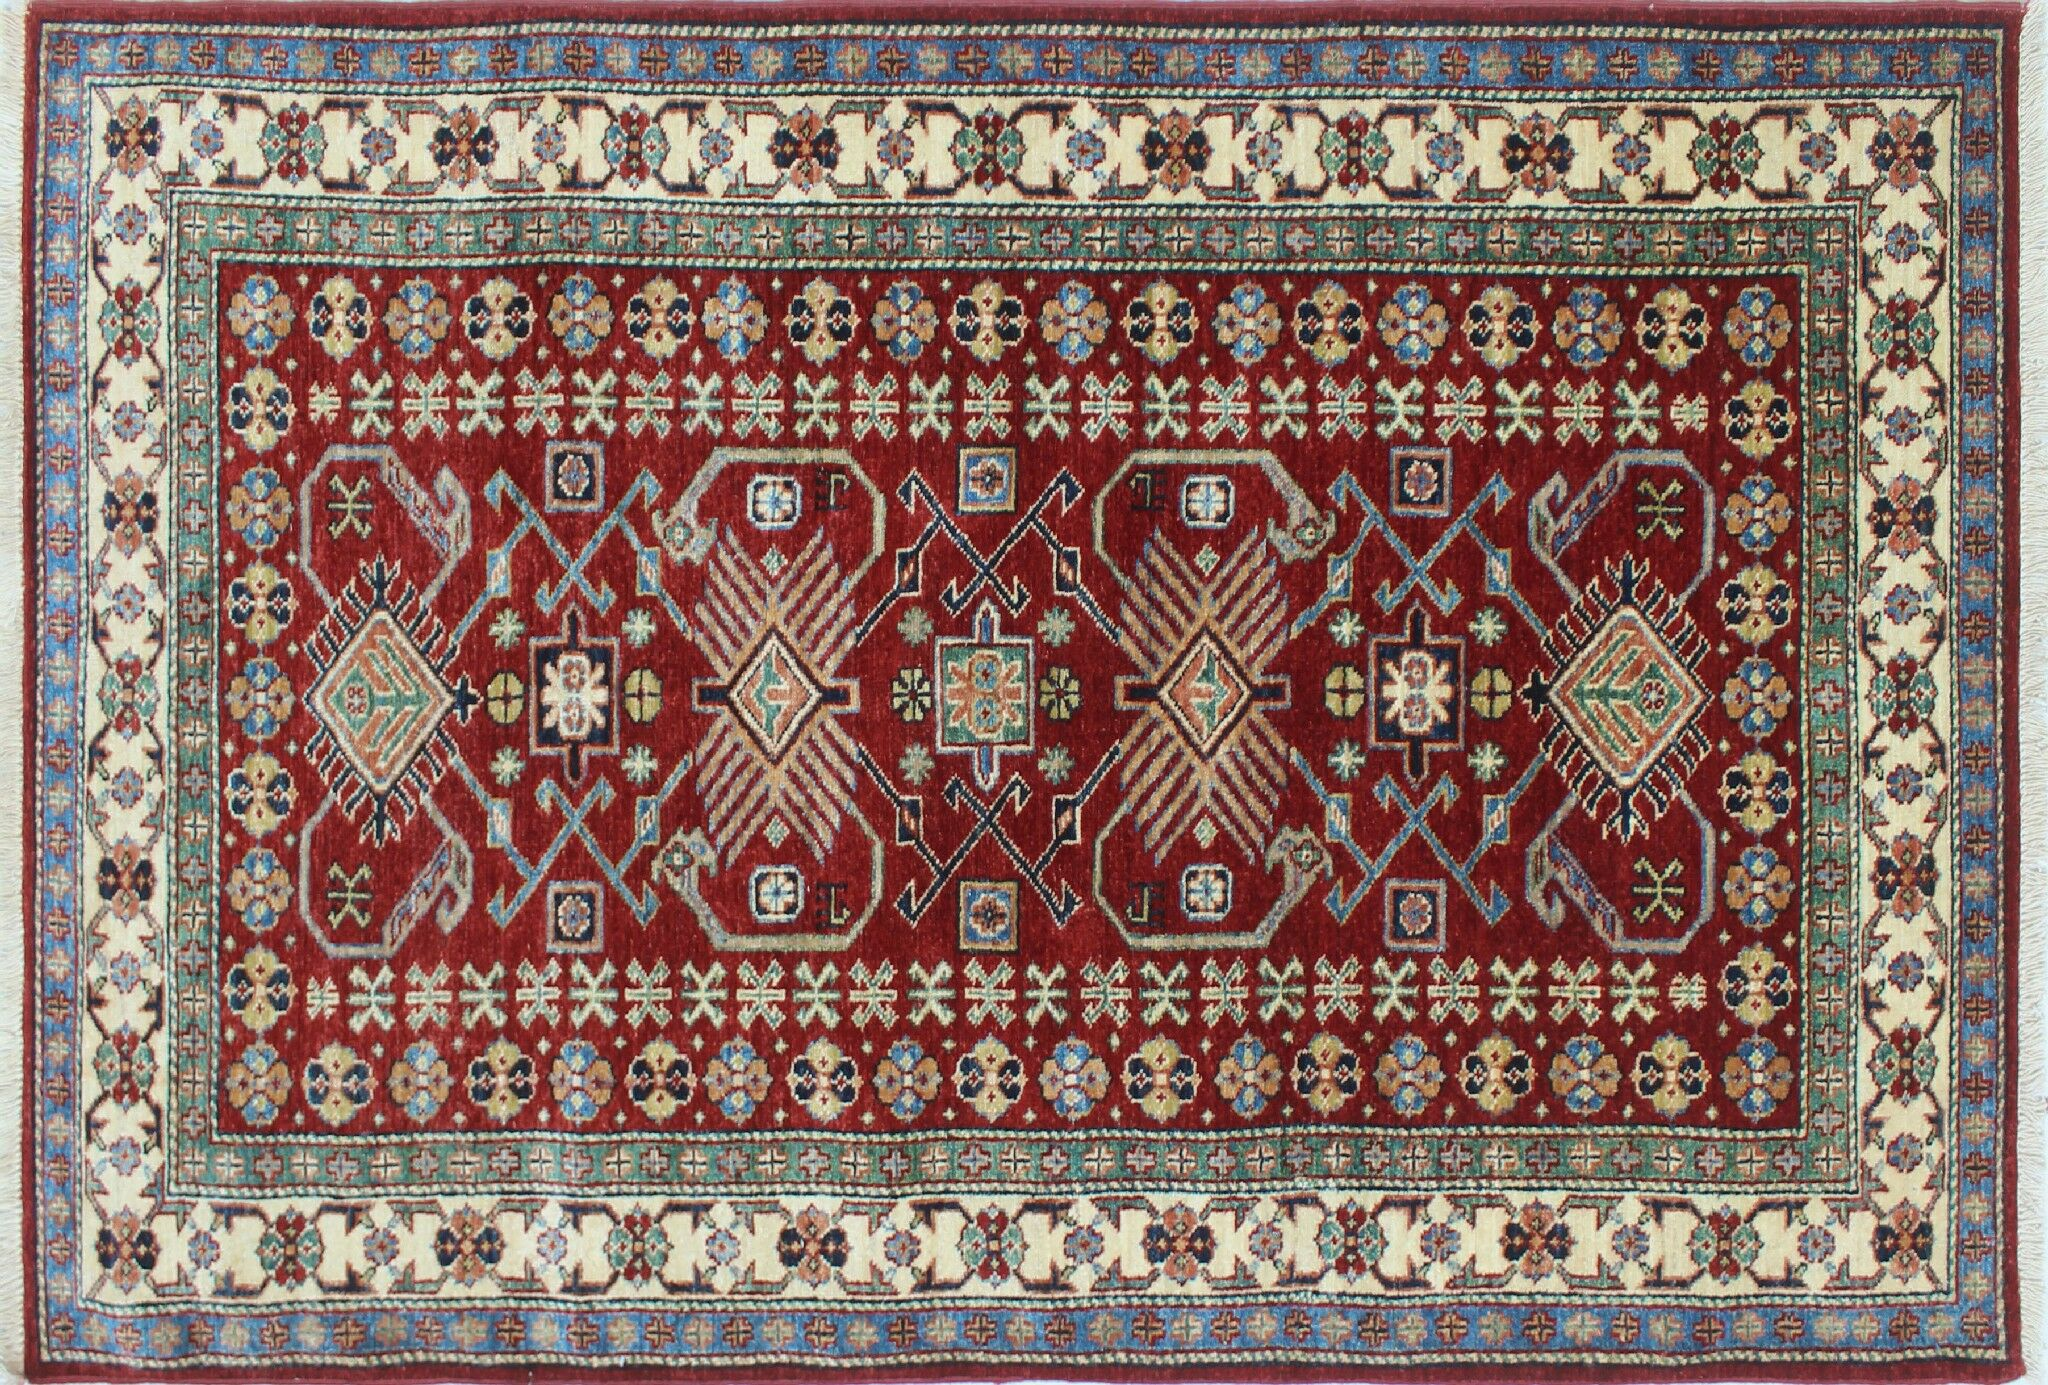 One-of-a-Kind Kazak Super Gul Hand-Knotted Red Area Rug